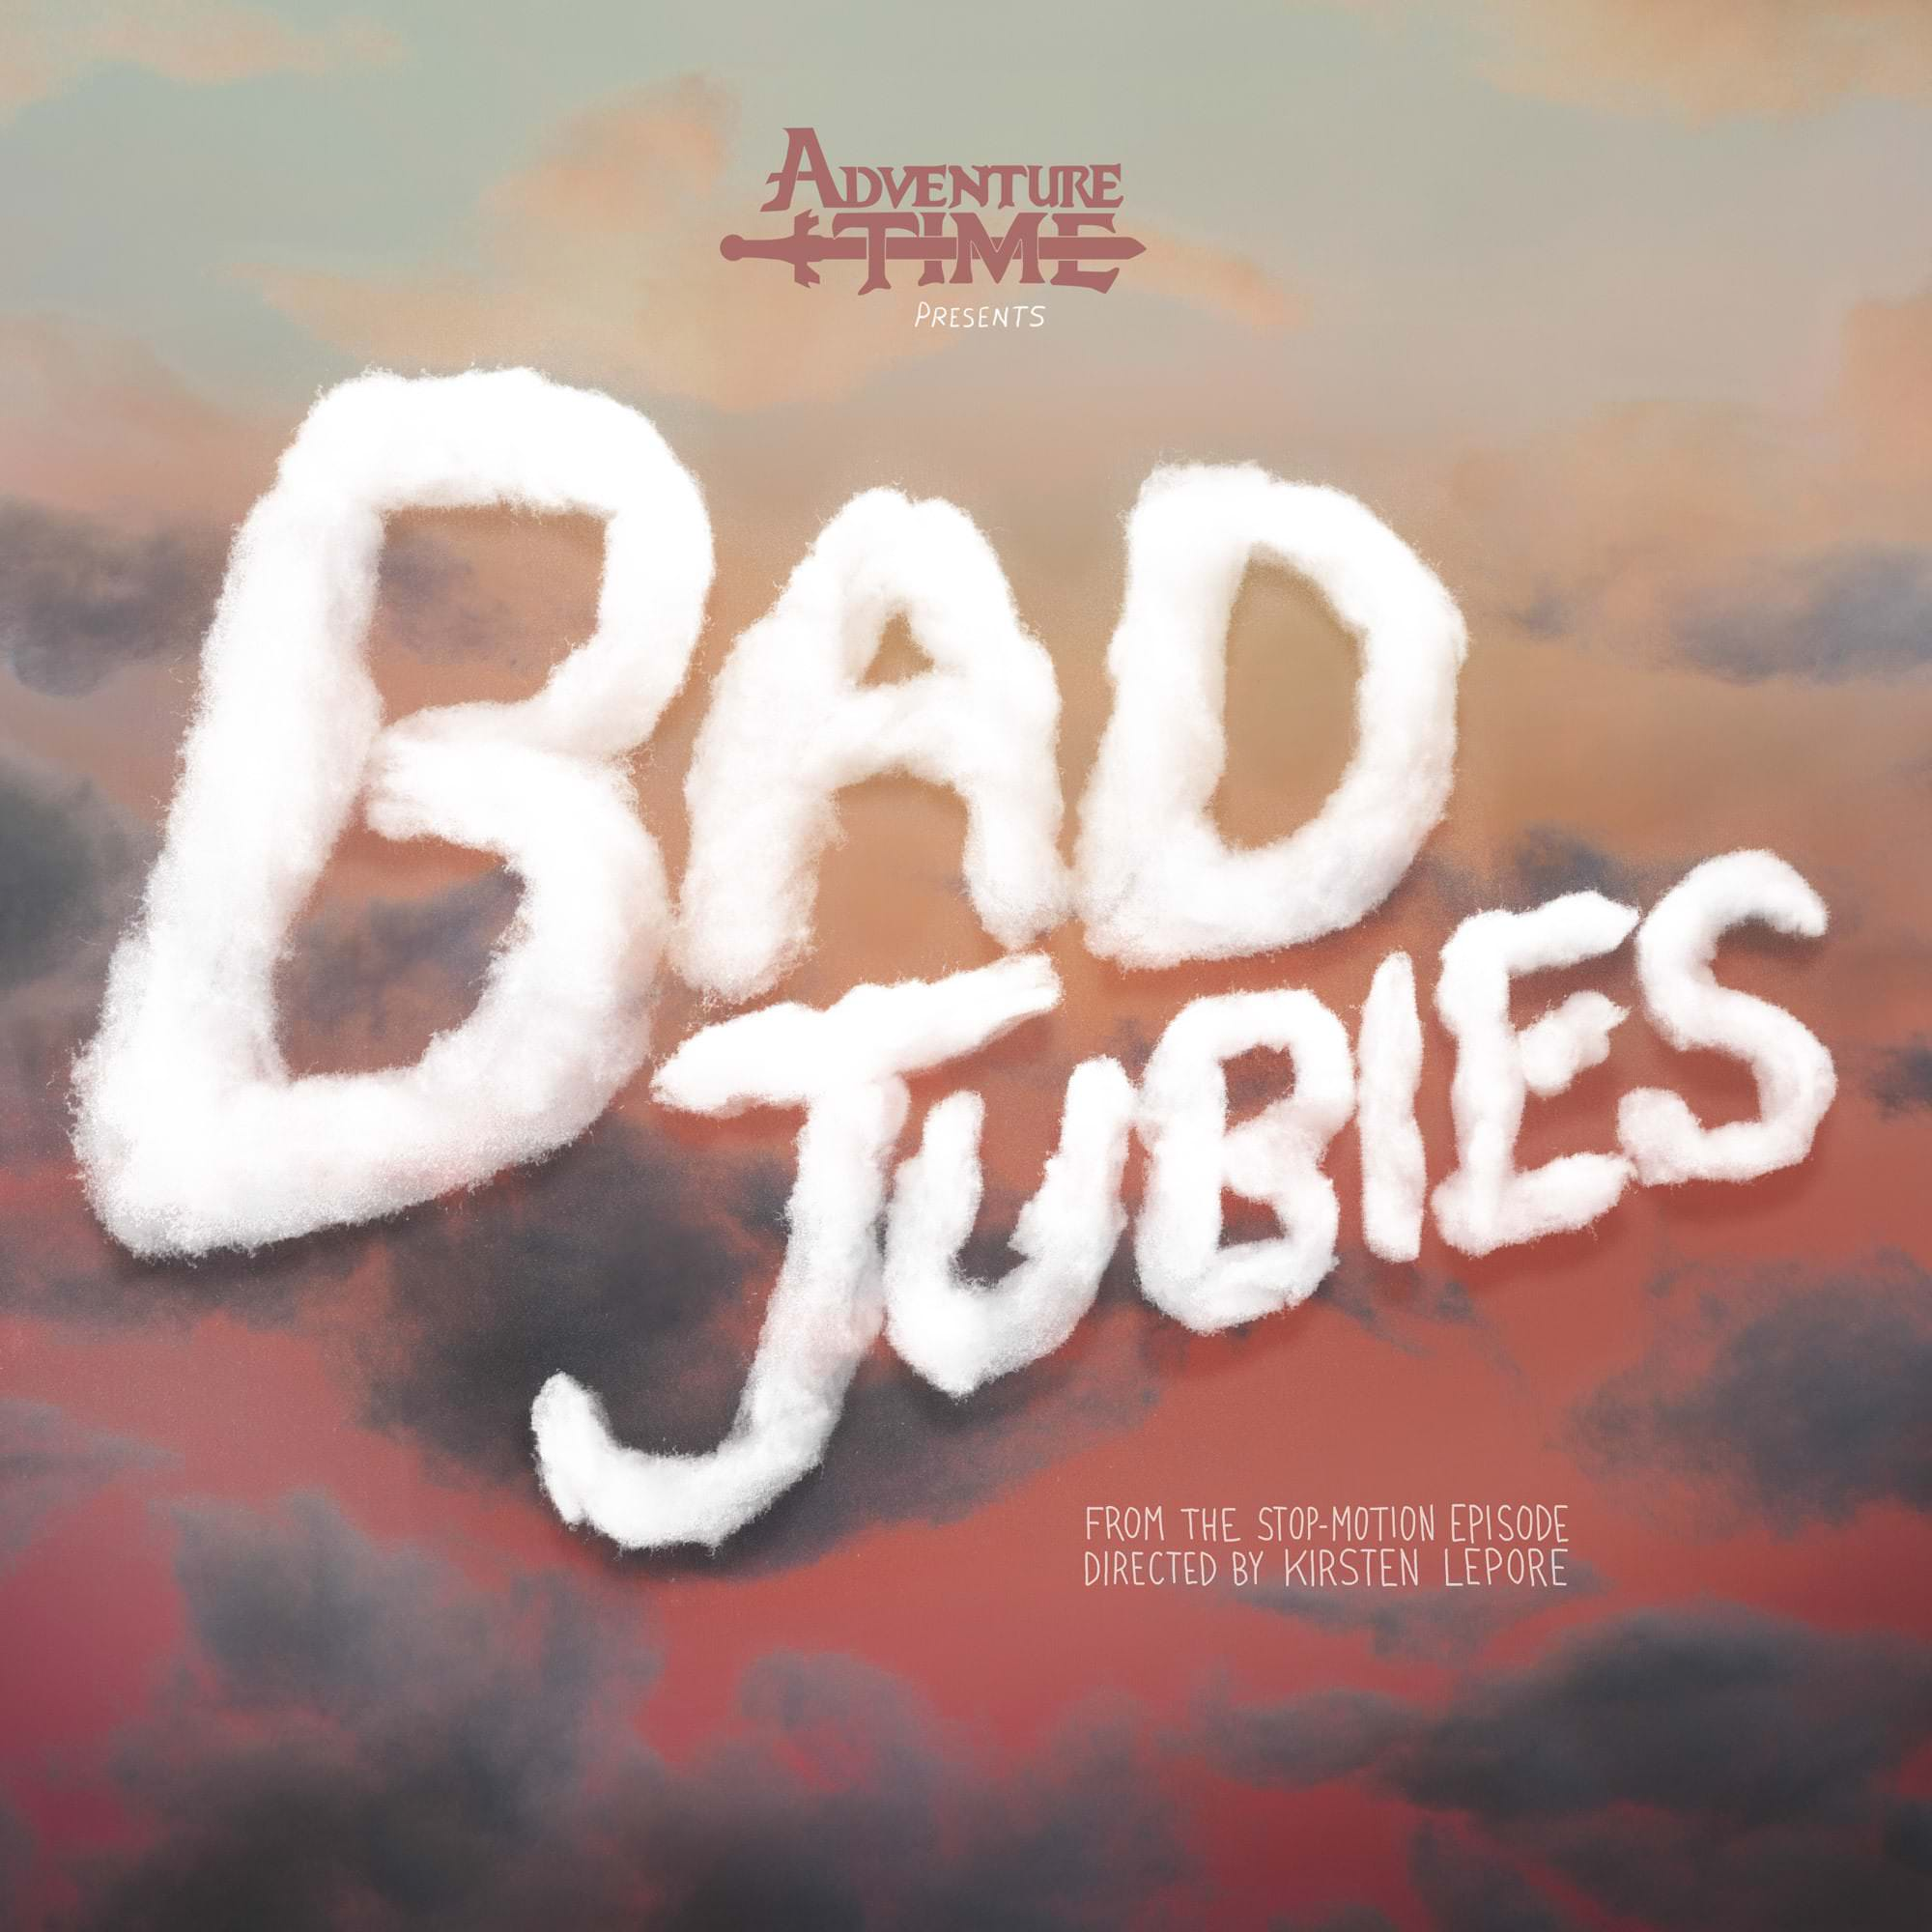 Adventure Time: Bad Jubies